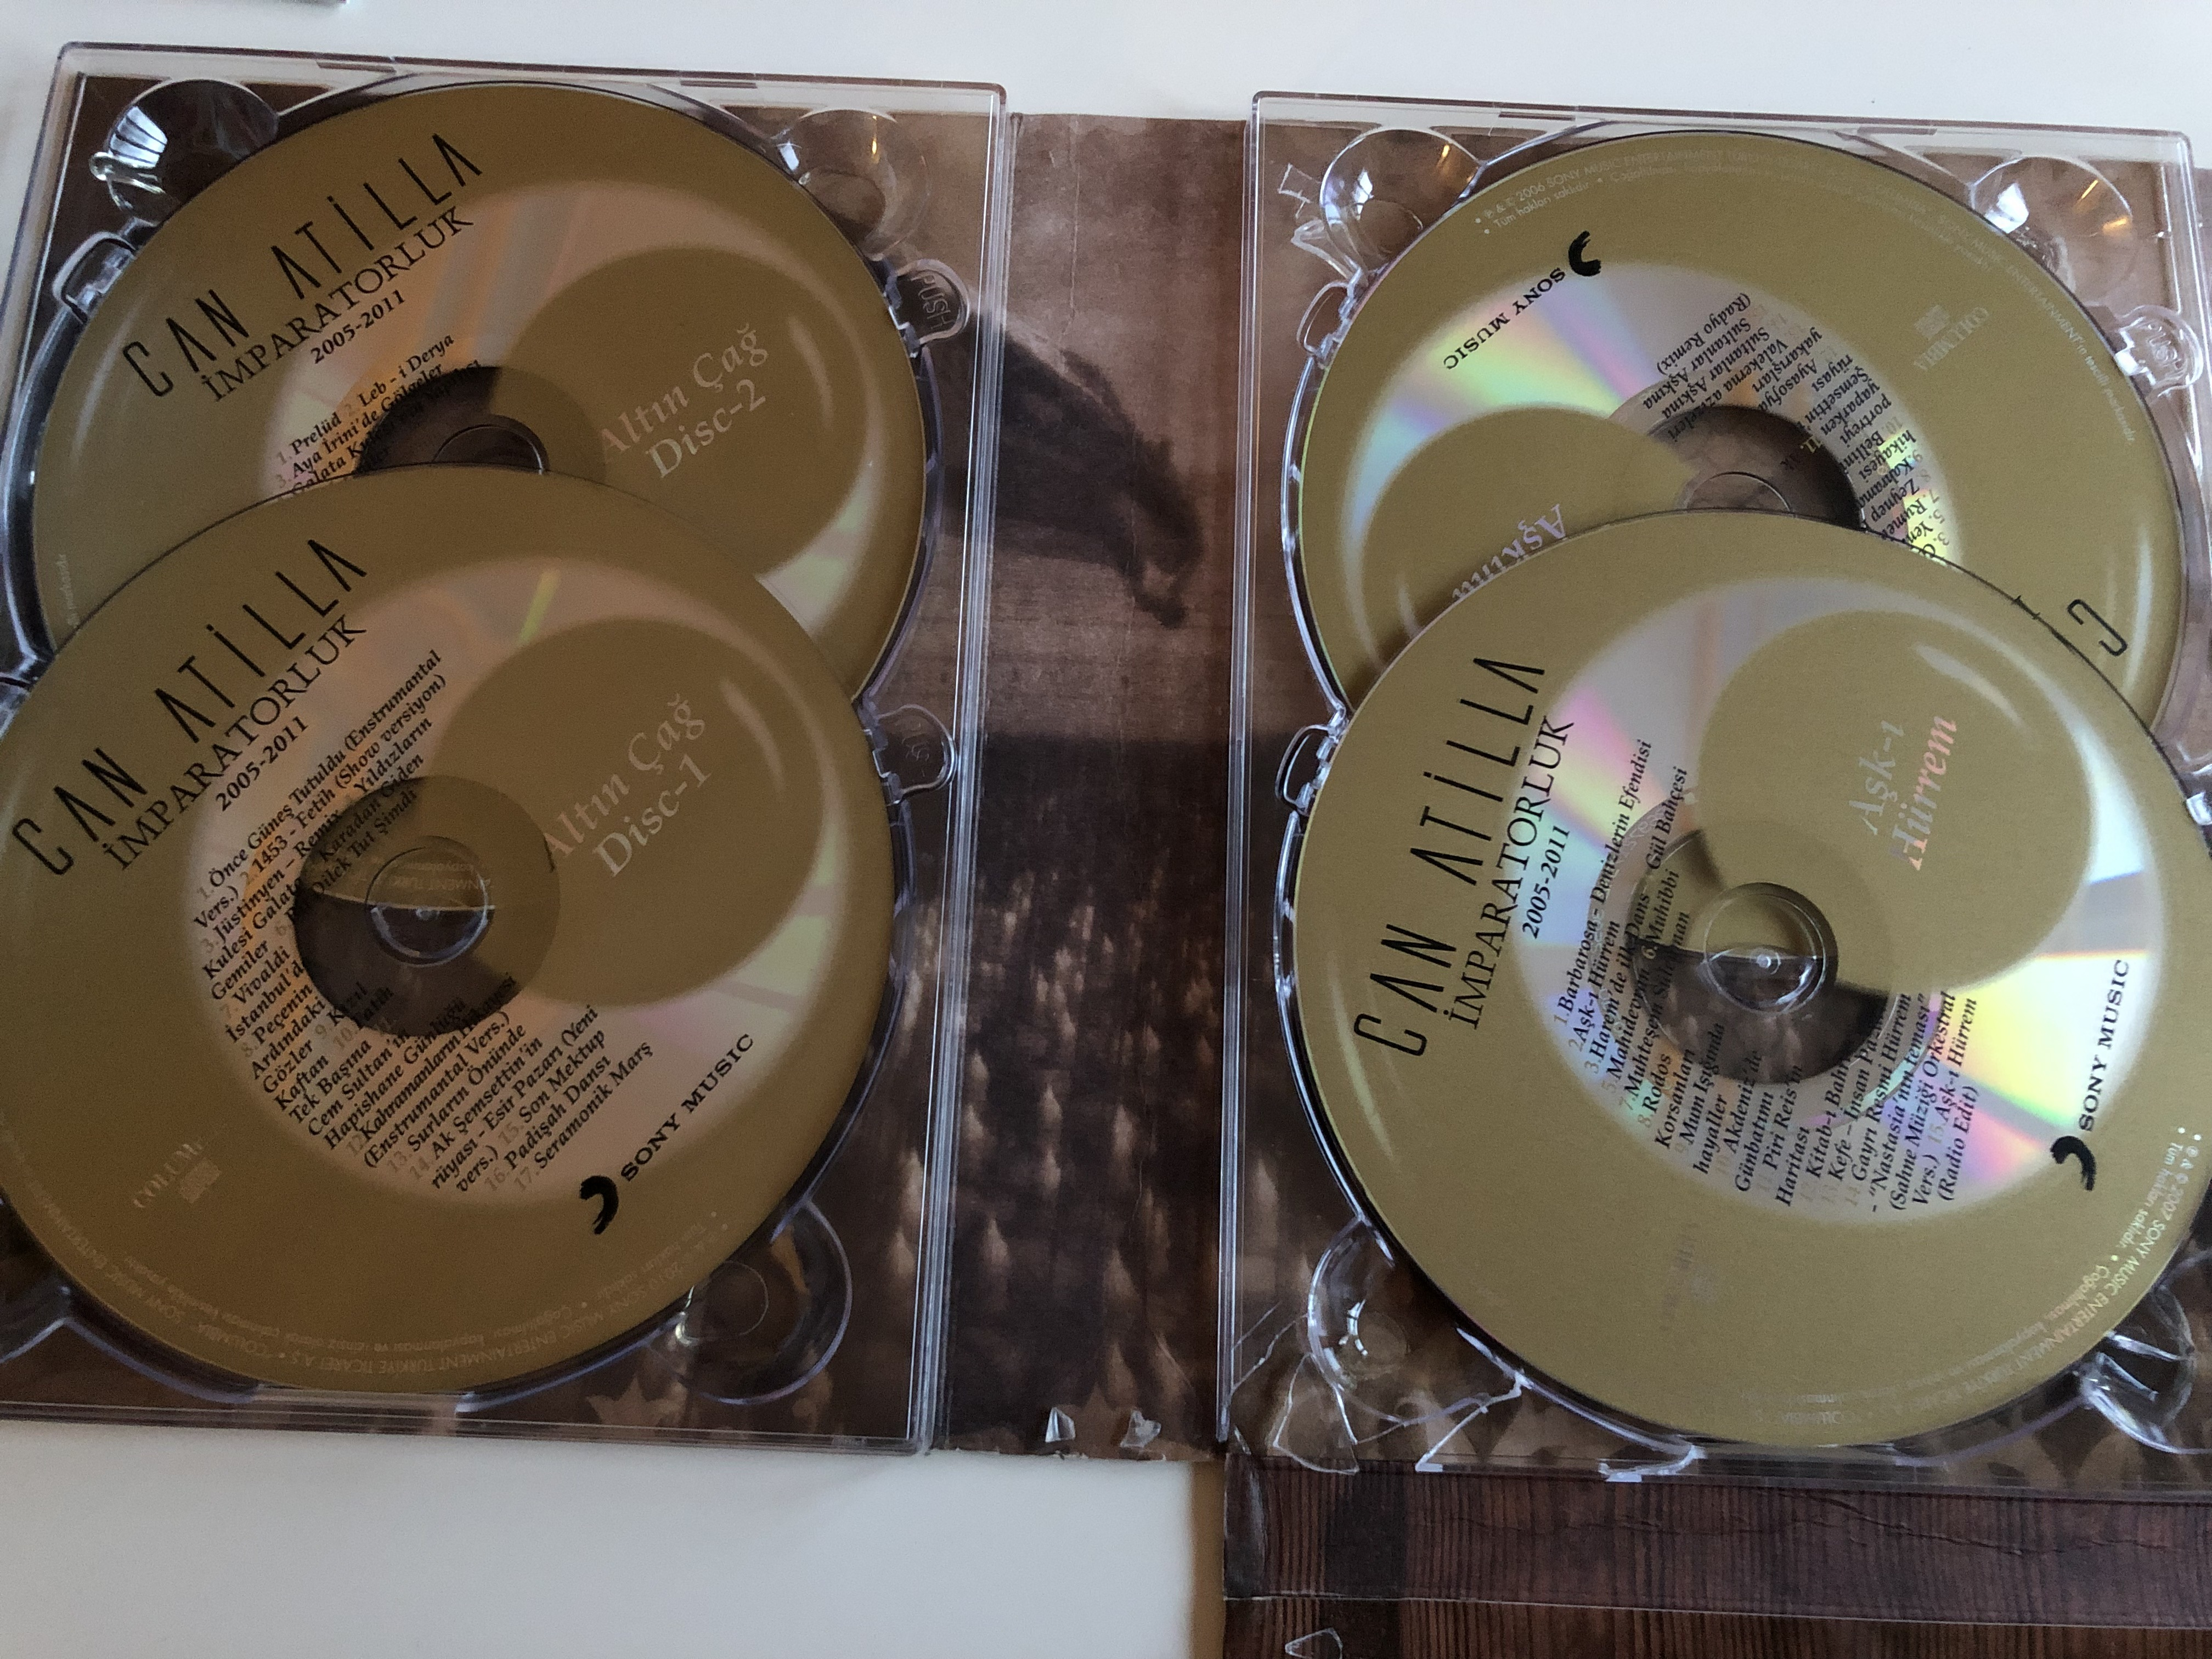 can-atilla-imparatorluk-2005-2011-the-empire-special-edition-5-cd-1-dvd-56-pg-exclusive-booklet-sony-music-7-.jpg